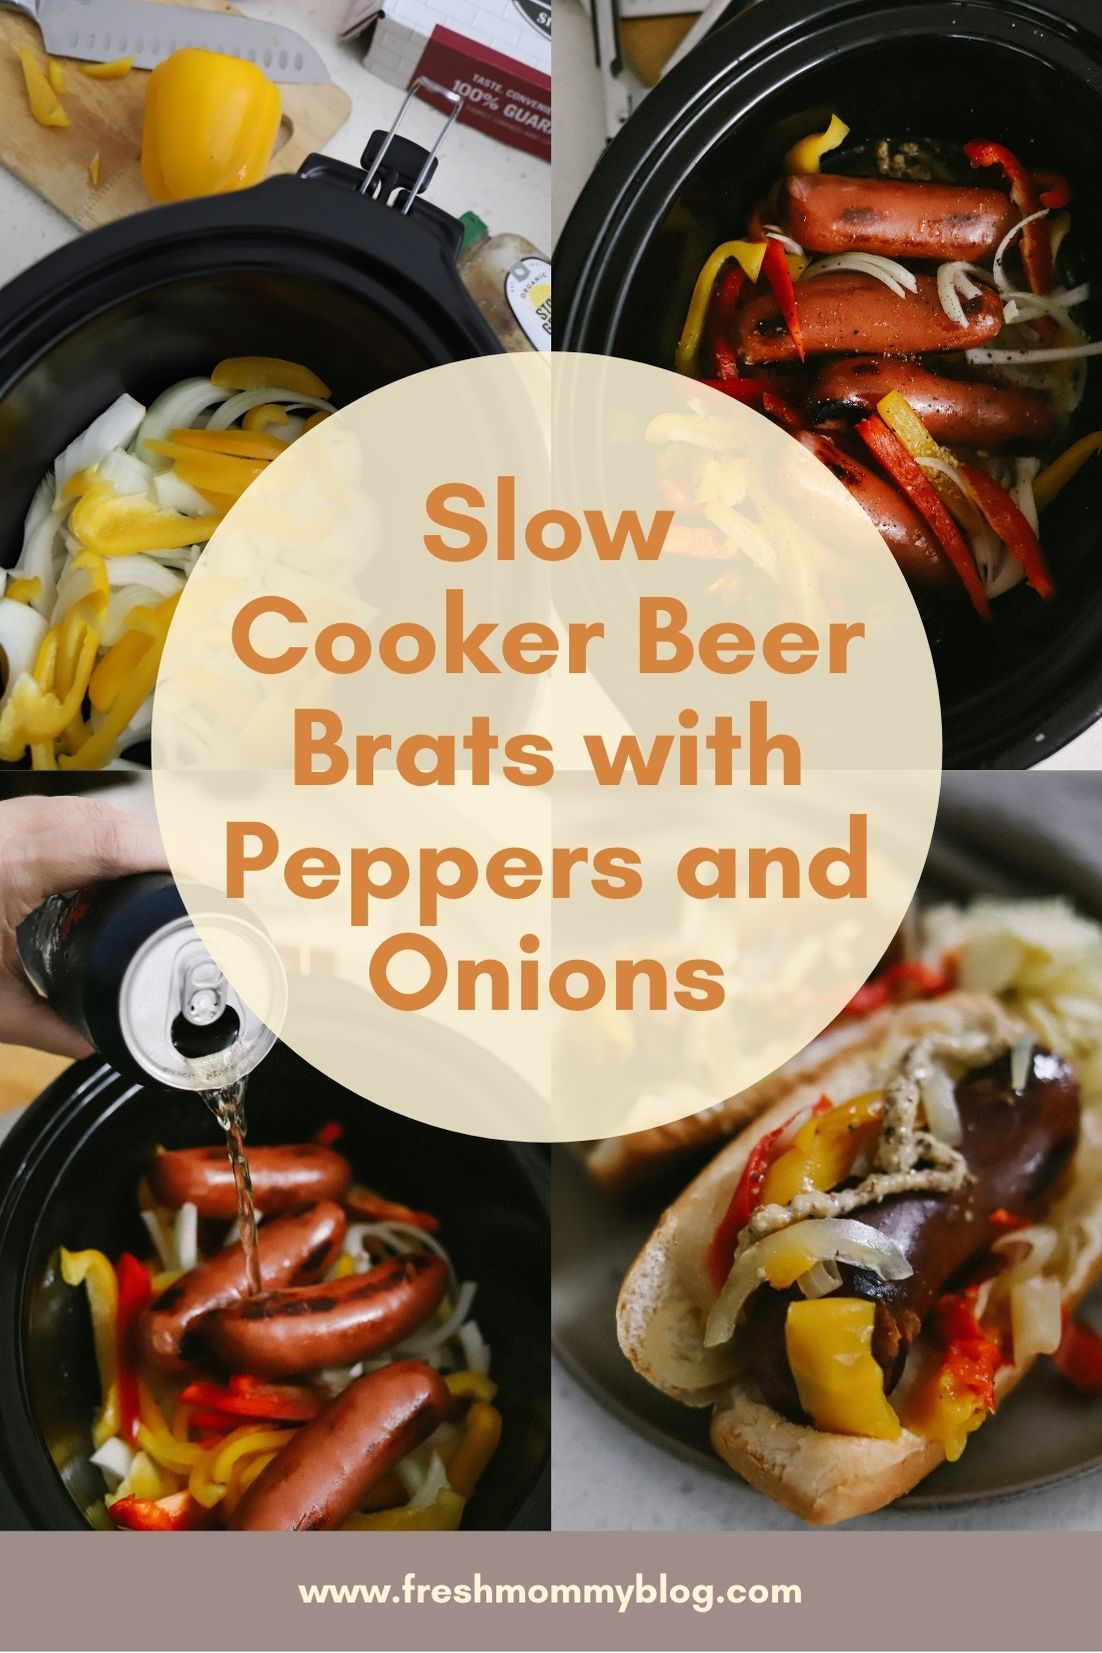 Whether it's game day or just a simple crockpot meal for easy weeknight eating, these Slow Cooker Beer Brats are a tasty winner! Slow-cooked for one of the most flavorful, juicy brats you've ever had and perfect on top of a bun, sliced over noodles, or eaten all on its own.